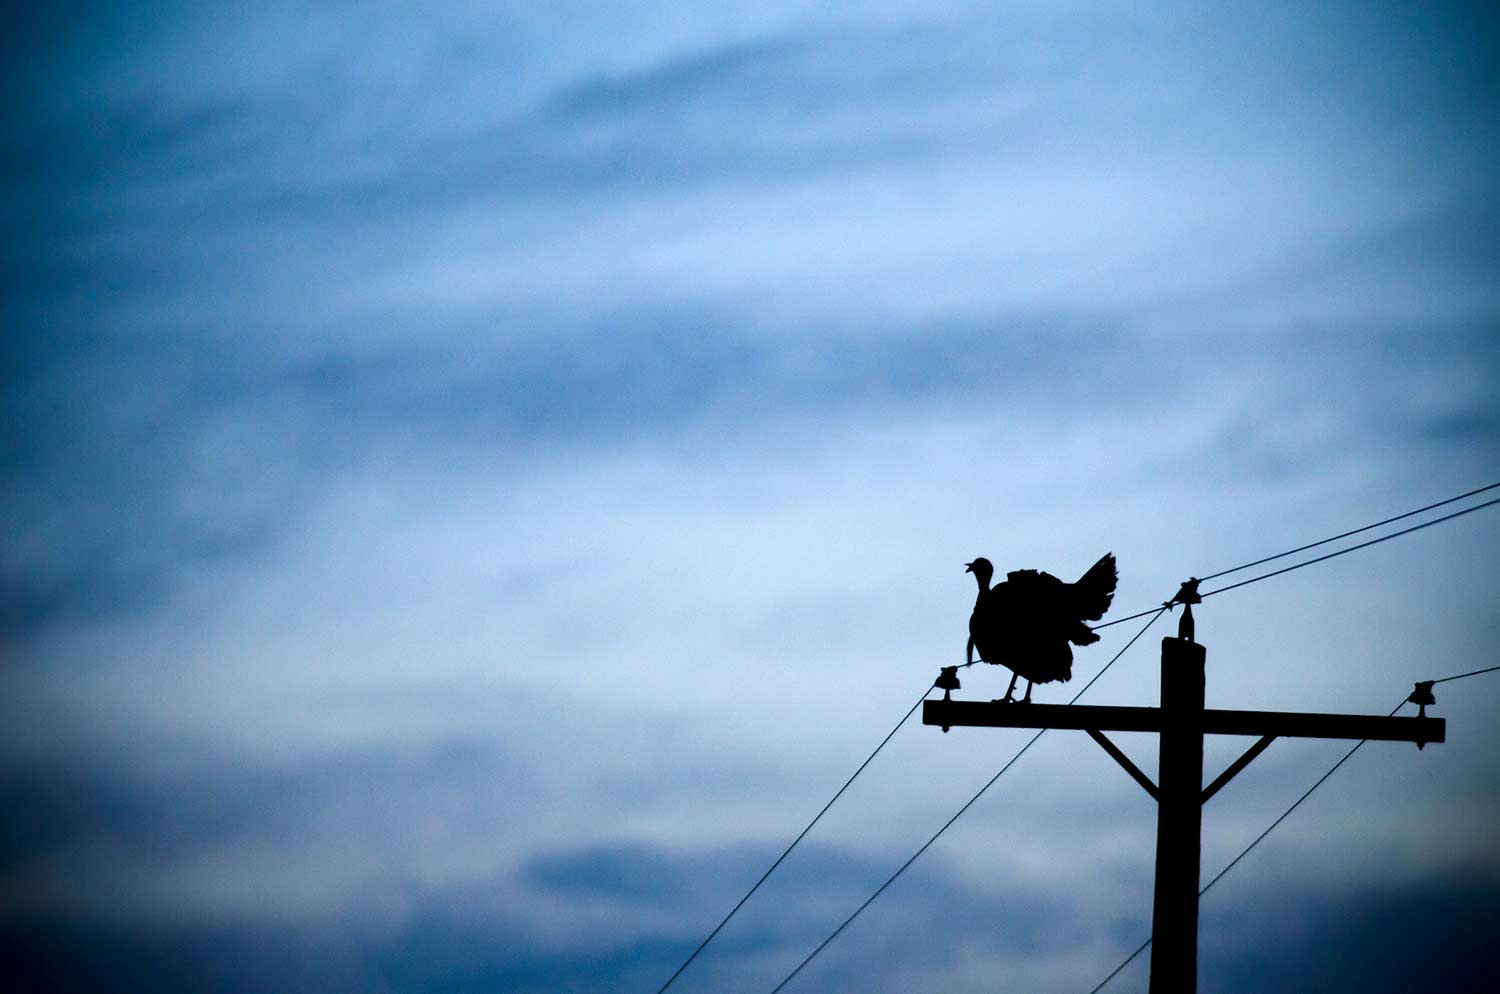 A wild turkey perched on a power line.